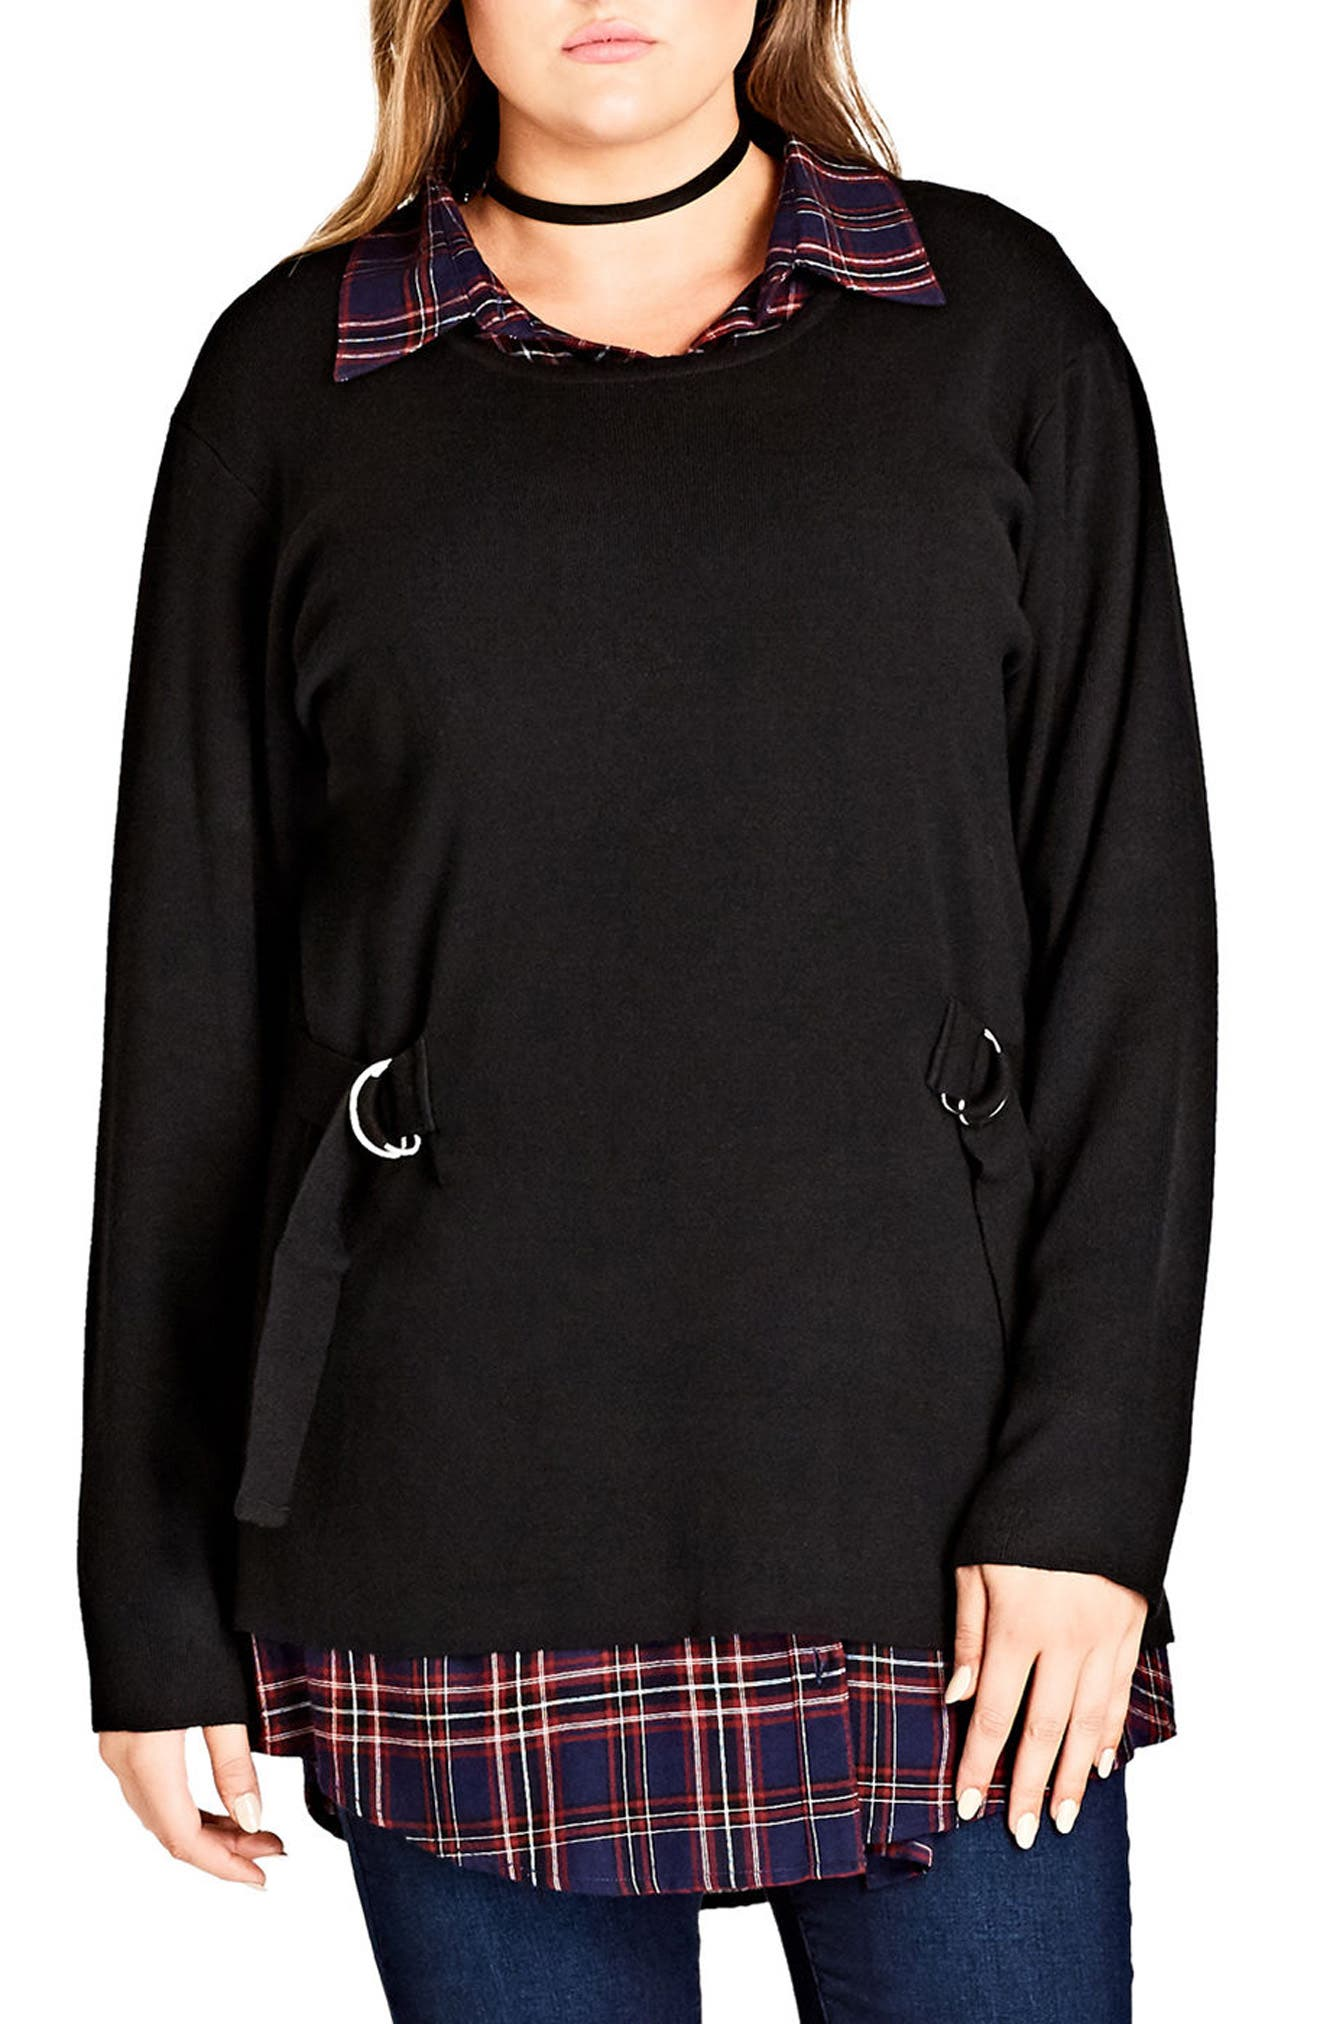 Main Image - City Chic D-Ring Sweater (Plus Size)